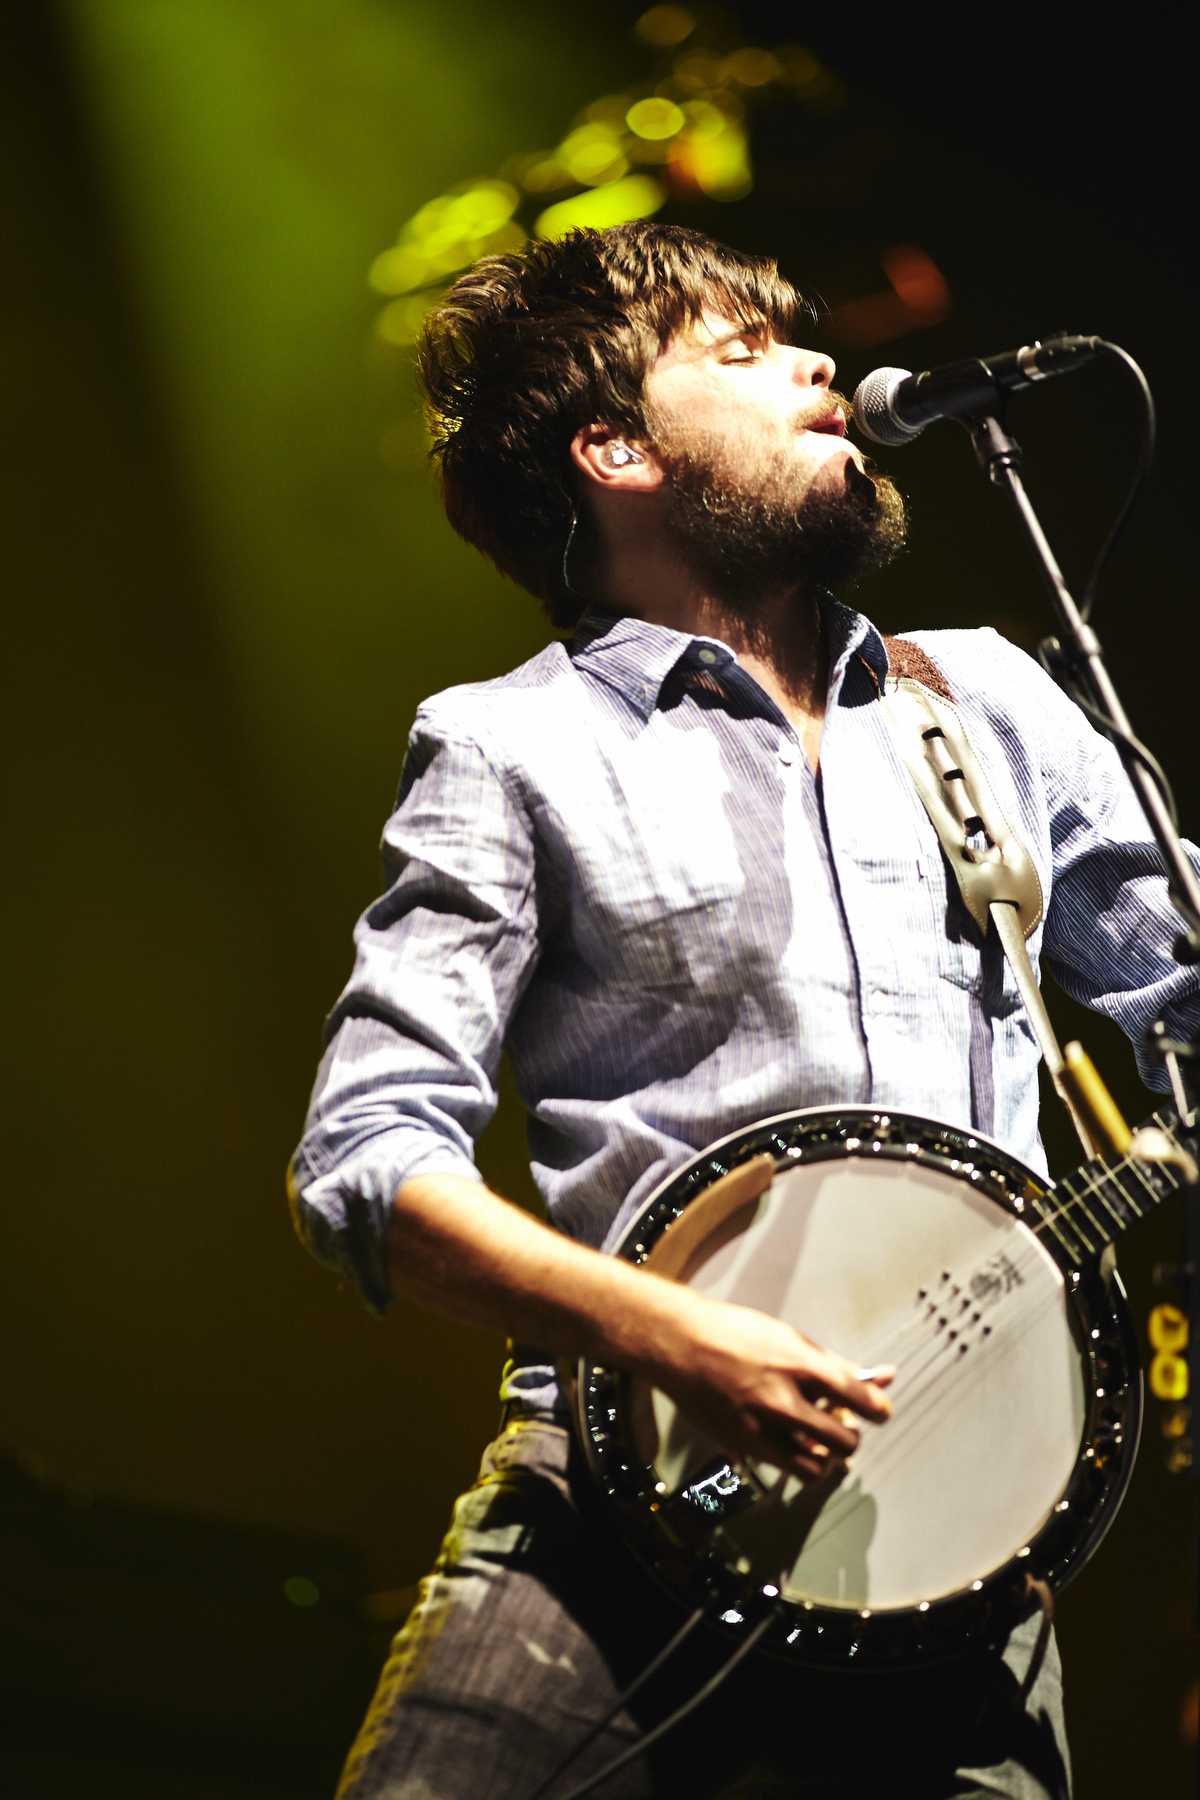 Mumford_And_Sons_At_Xcel_Energy_Center_By_Joe_Lemke_Medium_Res_004.JPG